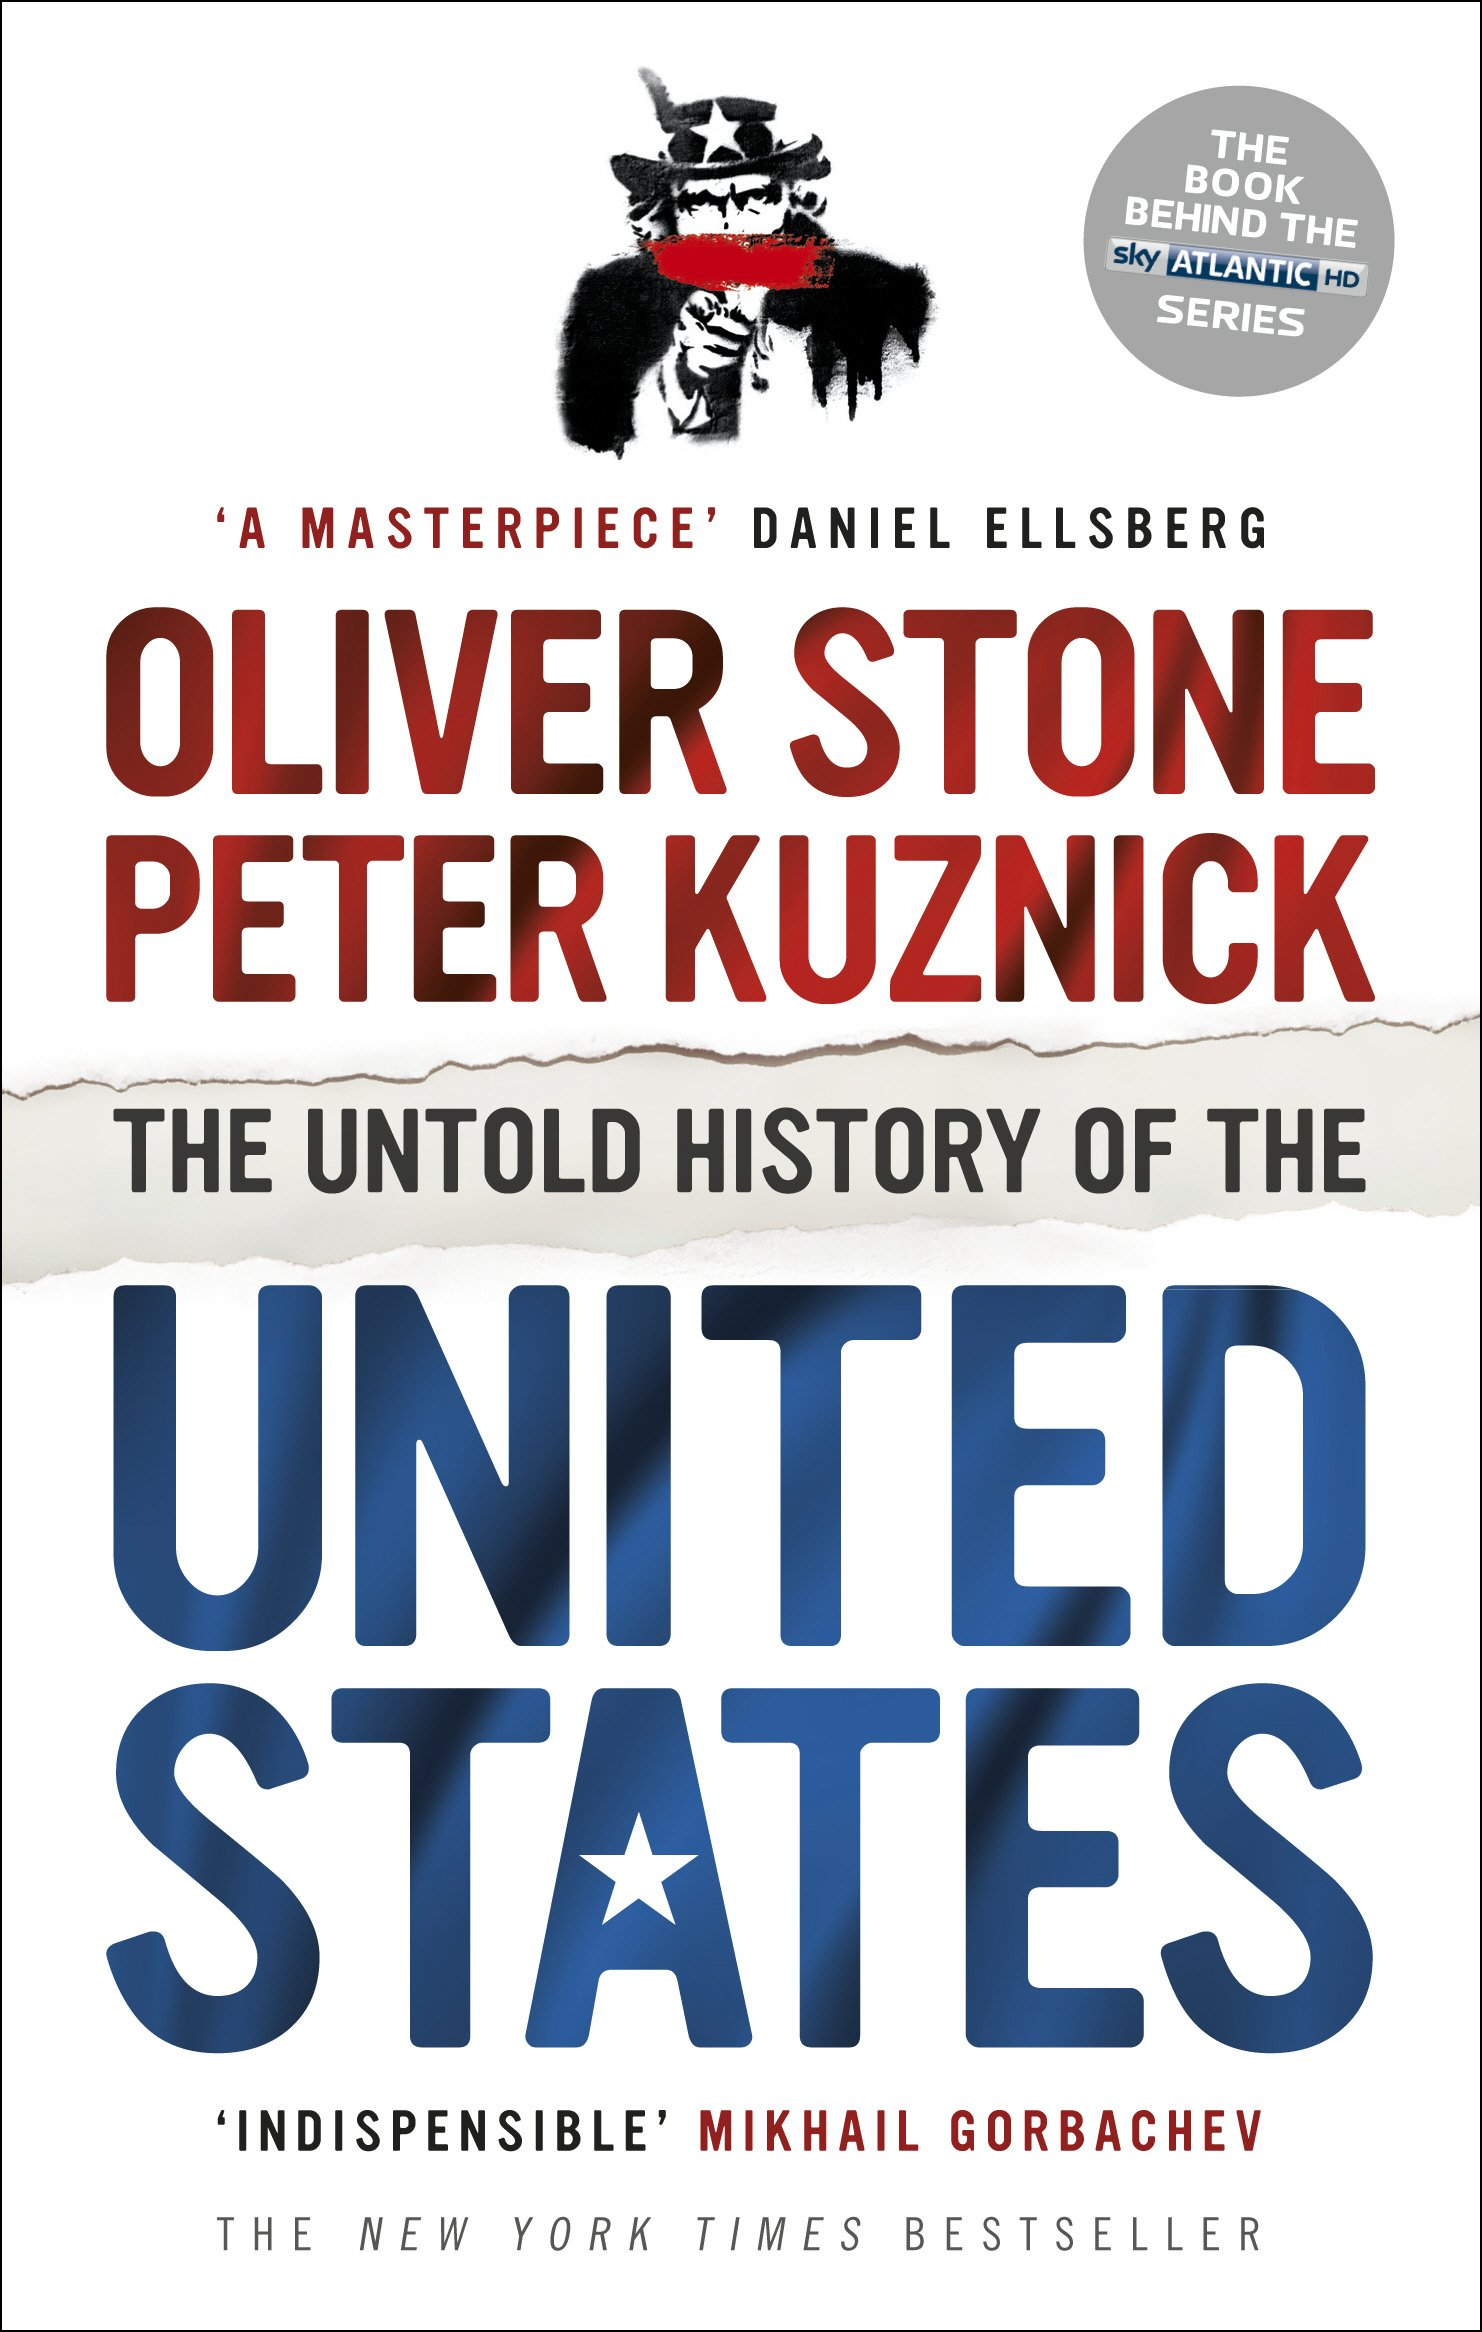 The Untold History of the United States: Amazon.es: Oliver Stone, Peter Kuznick: Libros en idiomas extranjeros